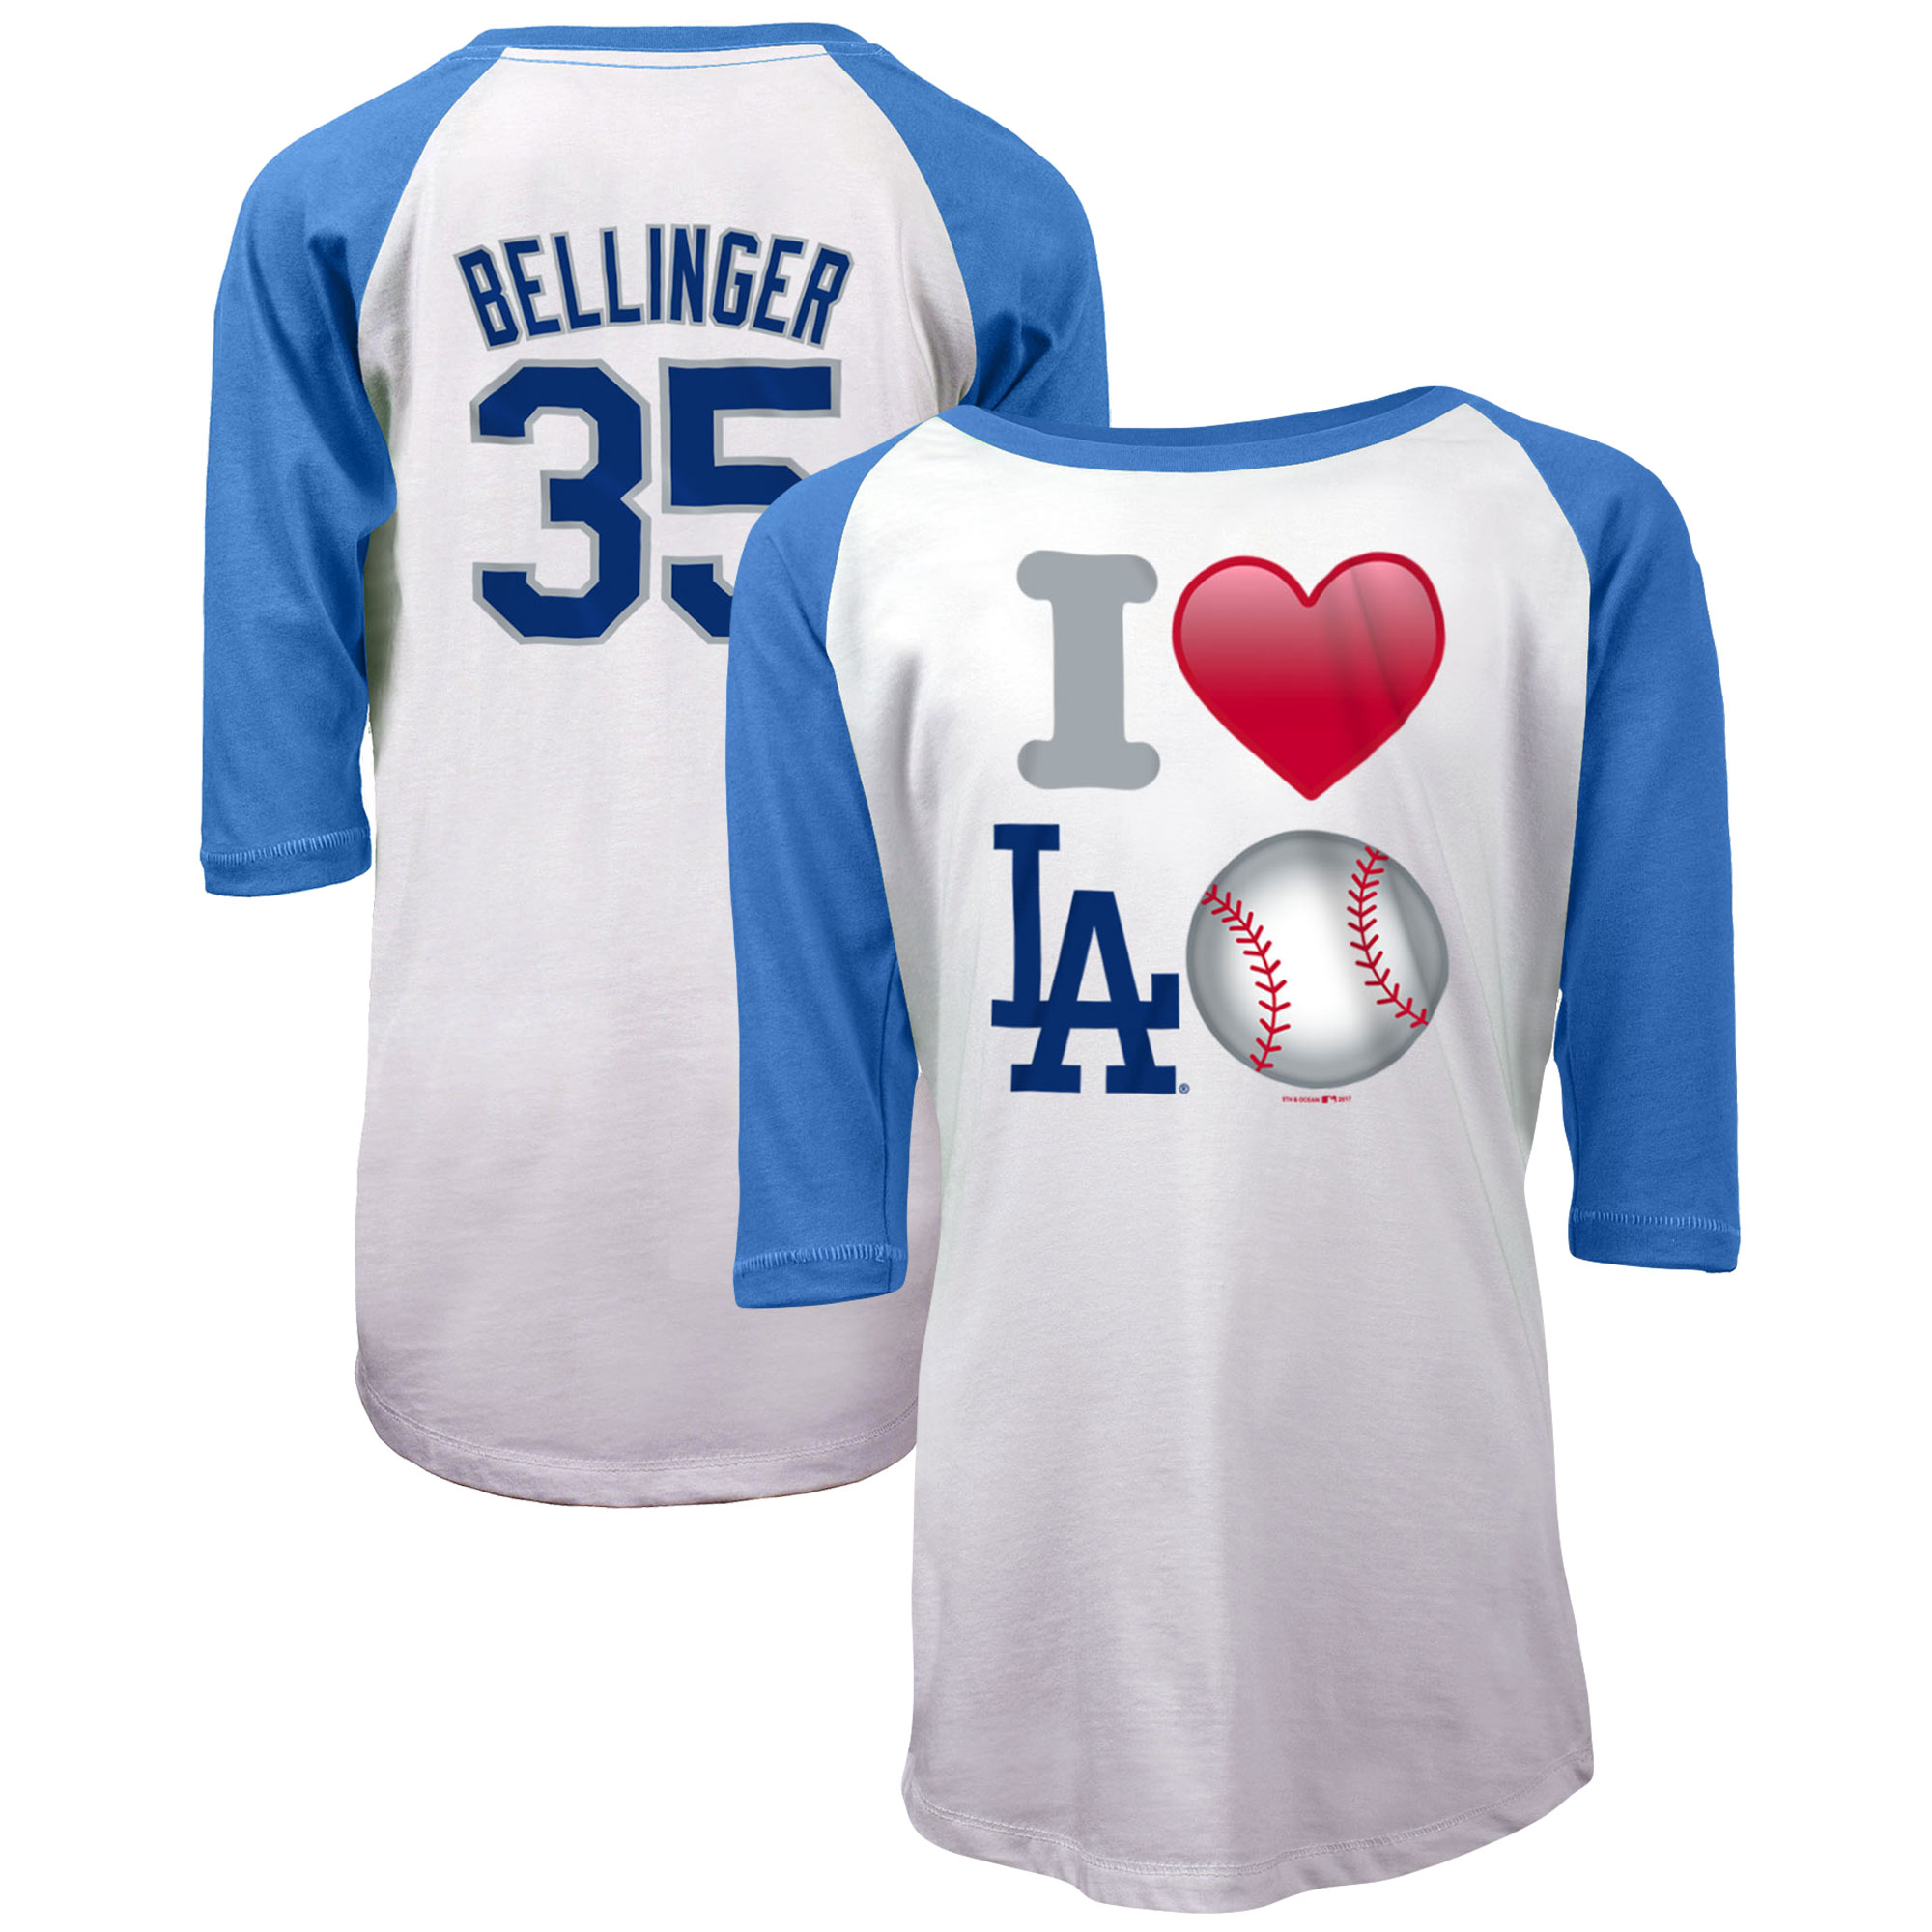 Cody Bellinger Los Angeles Dodgers 5th & Ocean by New Era Girls Youth Emoji Love Player Raglan Three-Quarter Sleeve T-Shirt - White/Royal